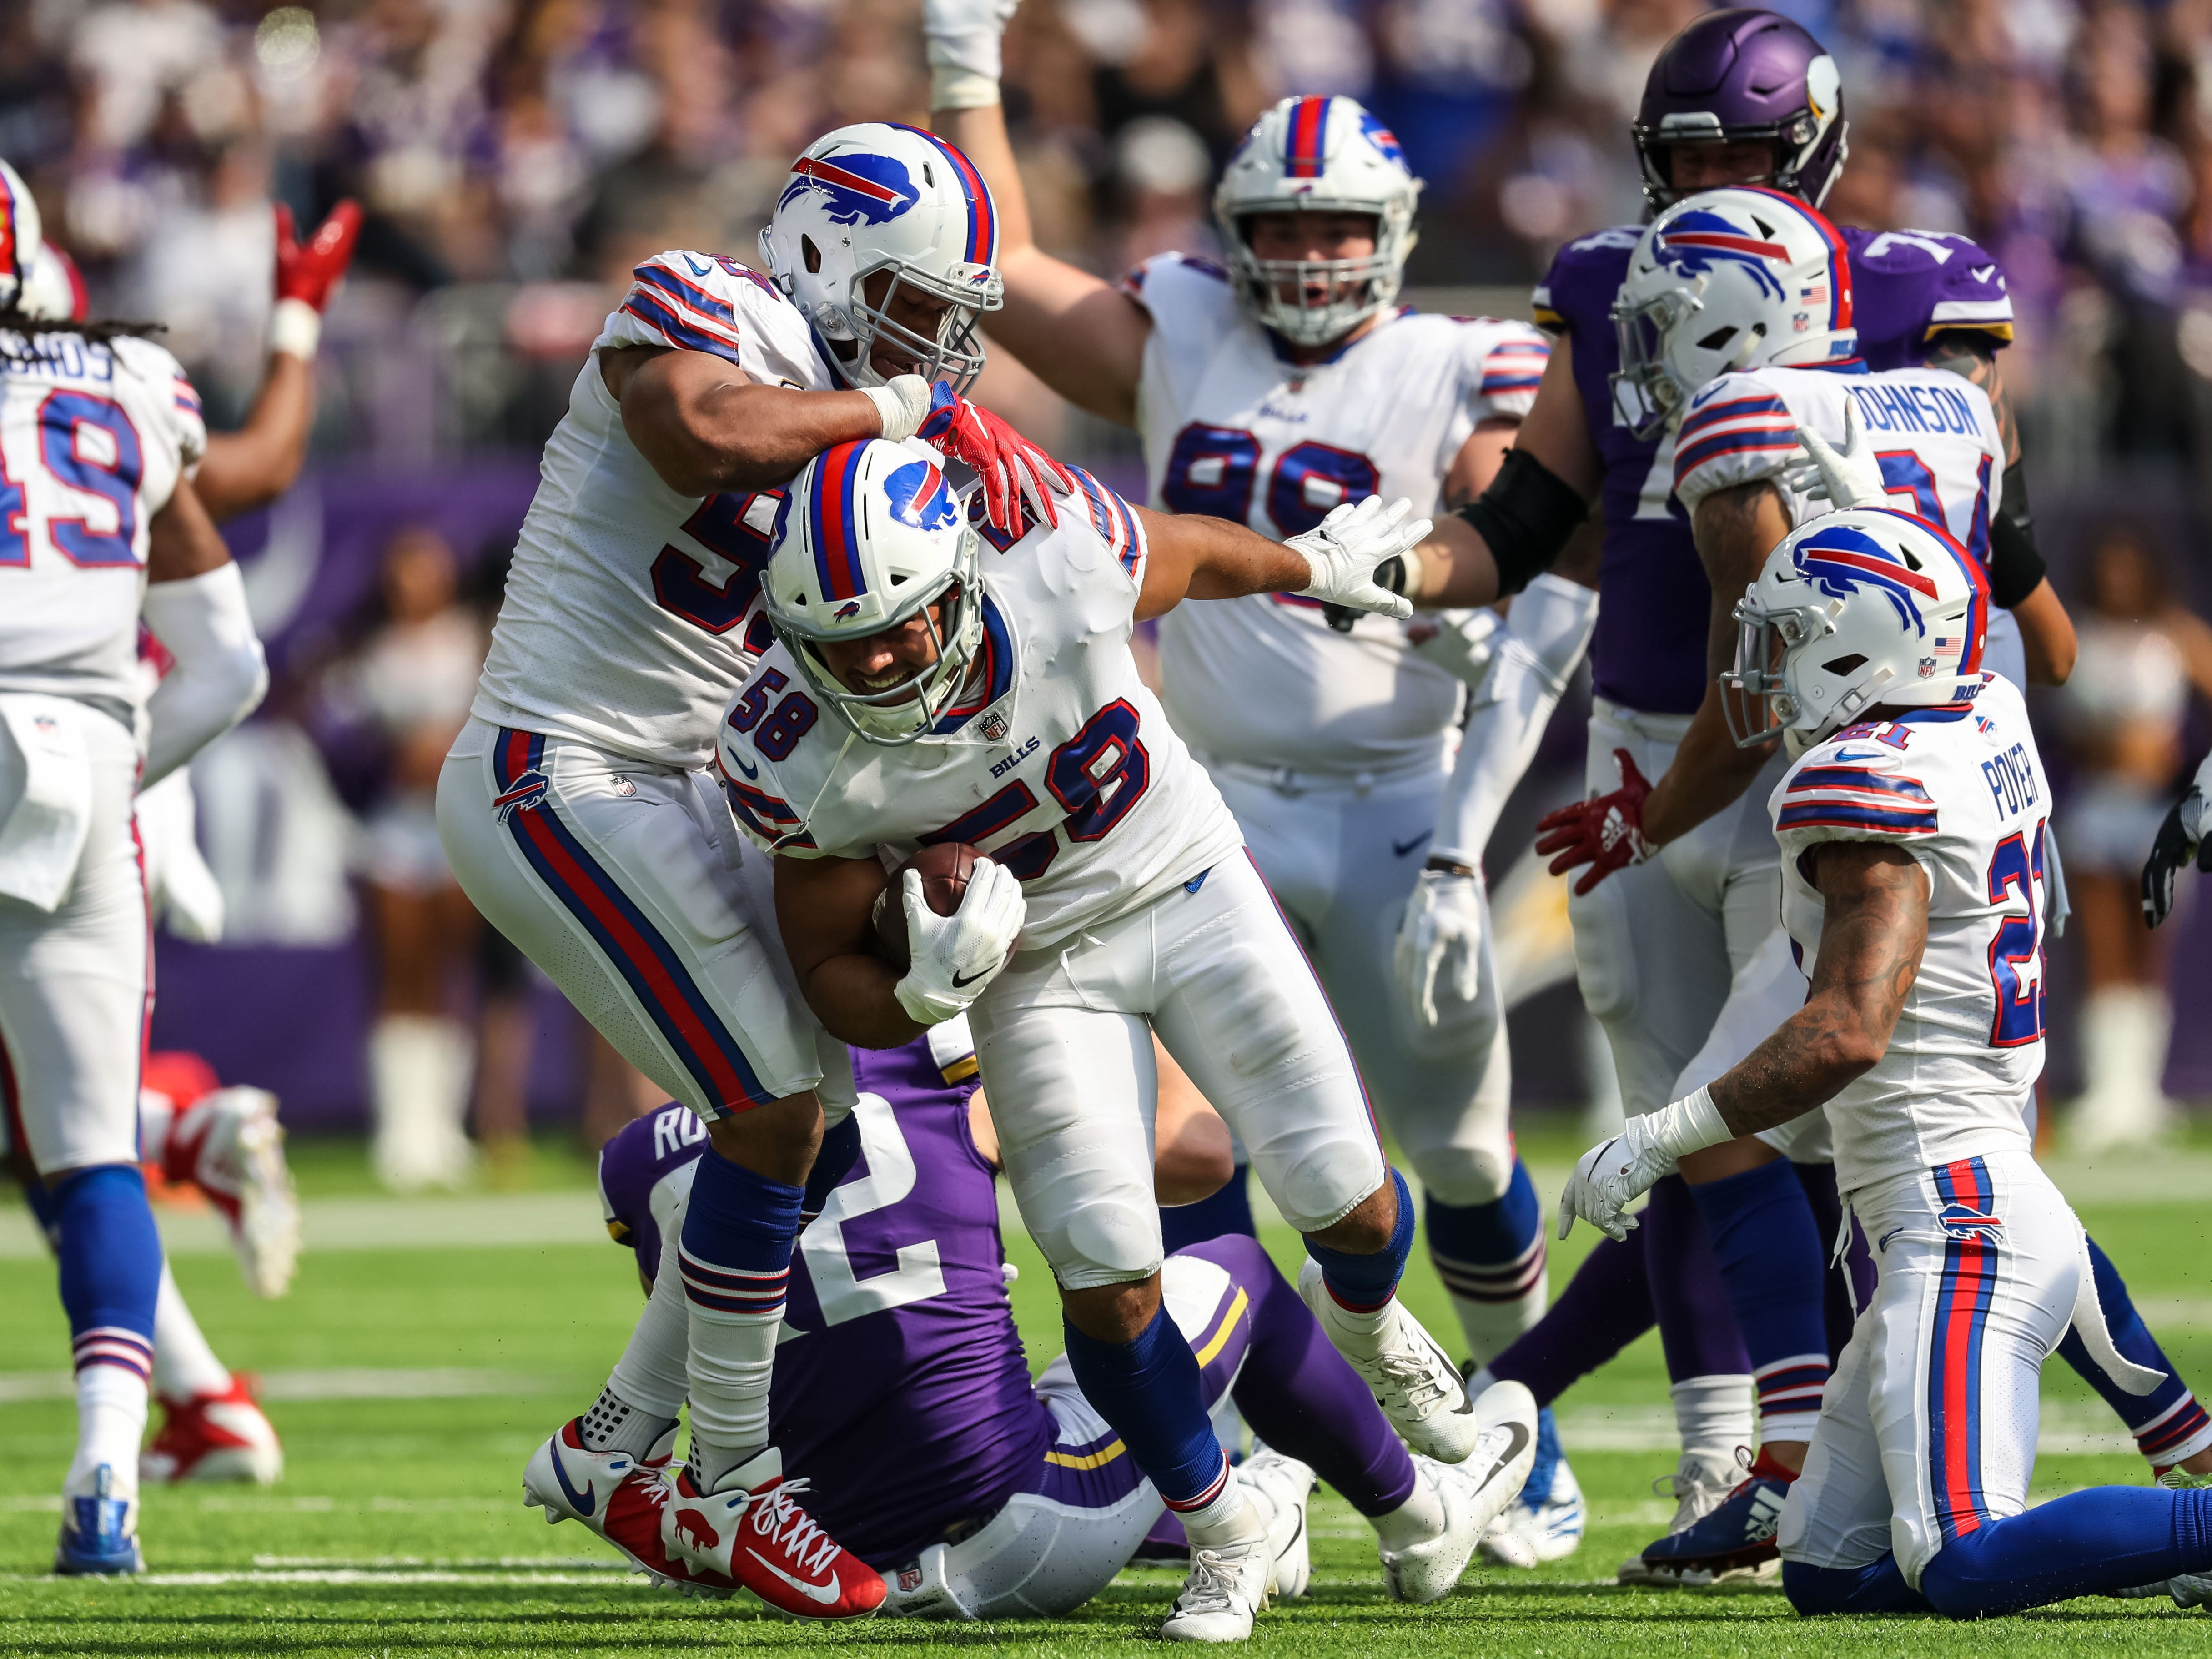 26. Bills (31): With Vontae Davis on team, they were outscored 75-9. Since he retired, they're up 41-9. So ... on pace for good season as long as he's gone.